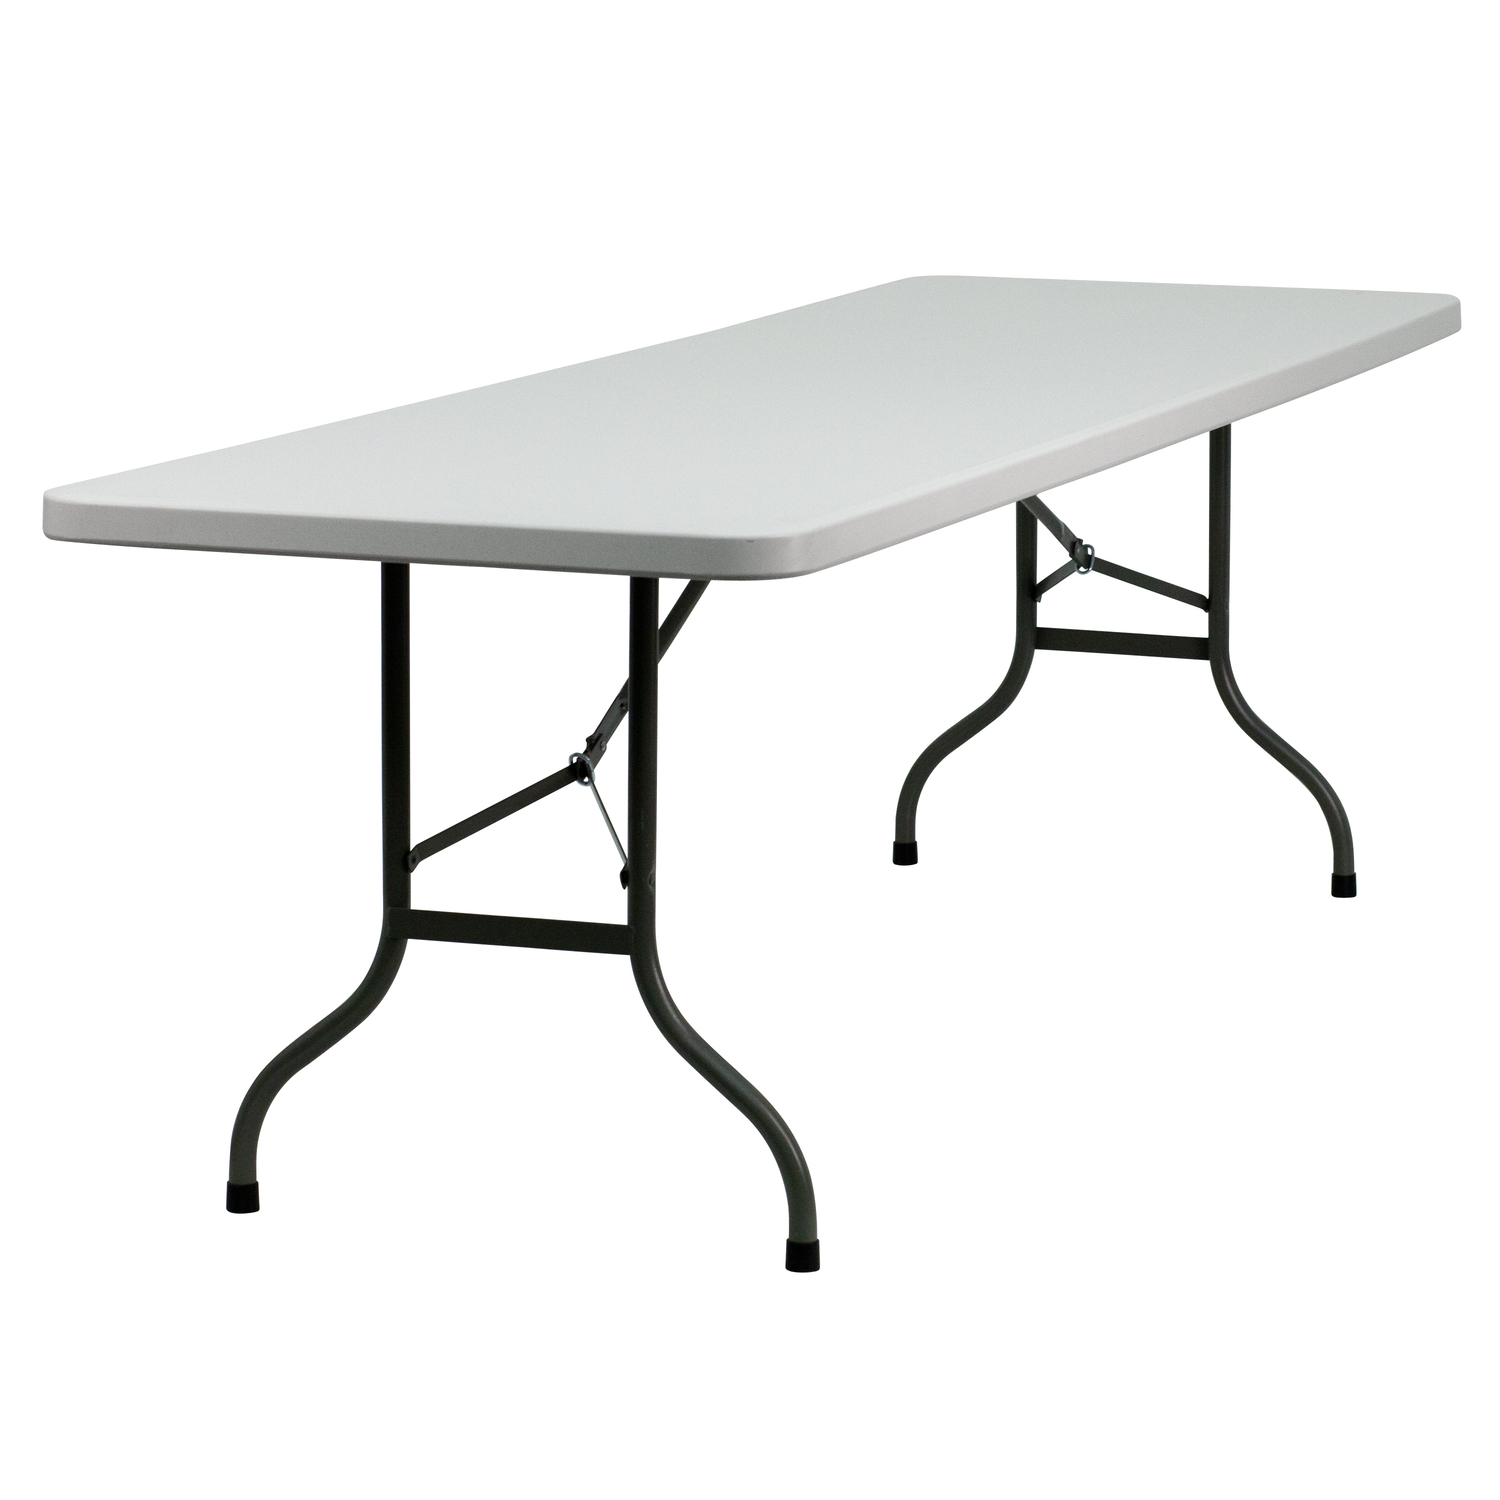 Plastic Folding Table : ... White Plastic Folding Table by OJ Commerce HY-244-T016-GG - $231.04